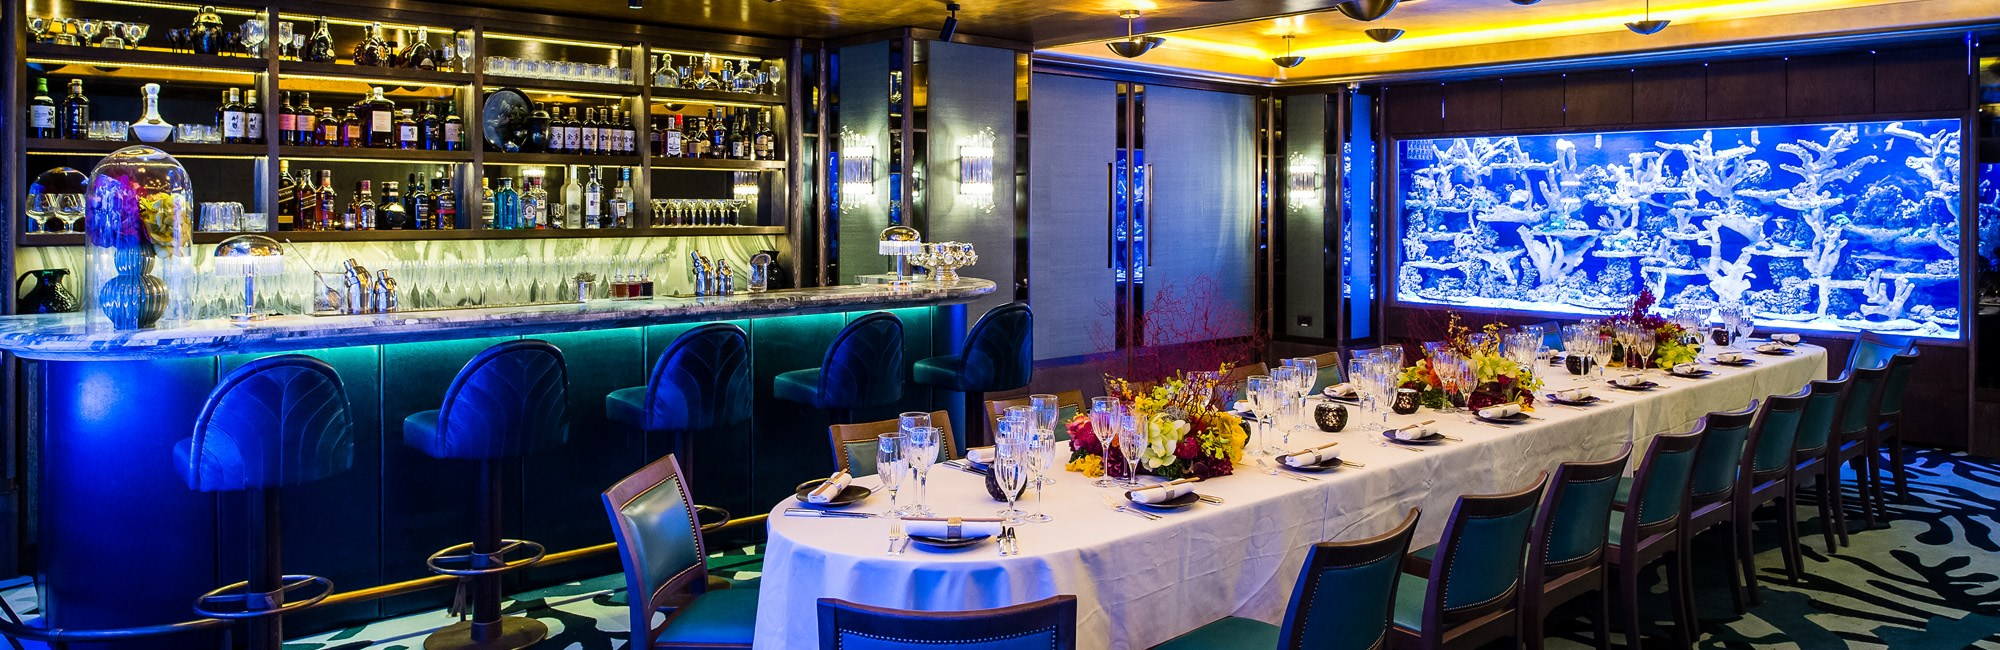 Event Venue and Private Hire in Mayfair, Sexy Fish, Private Dining Room